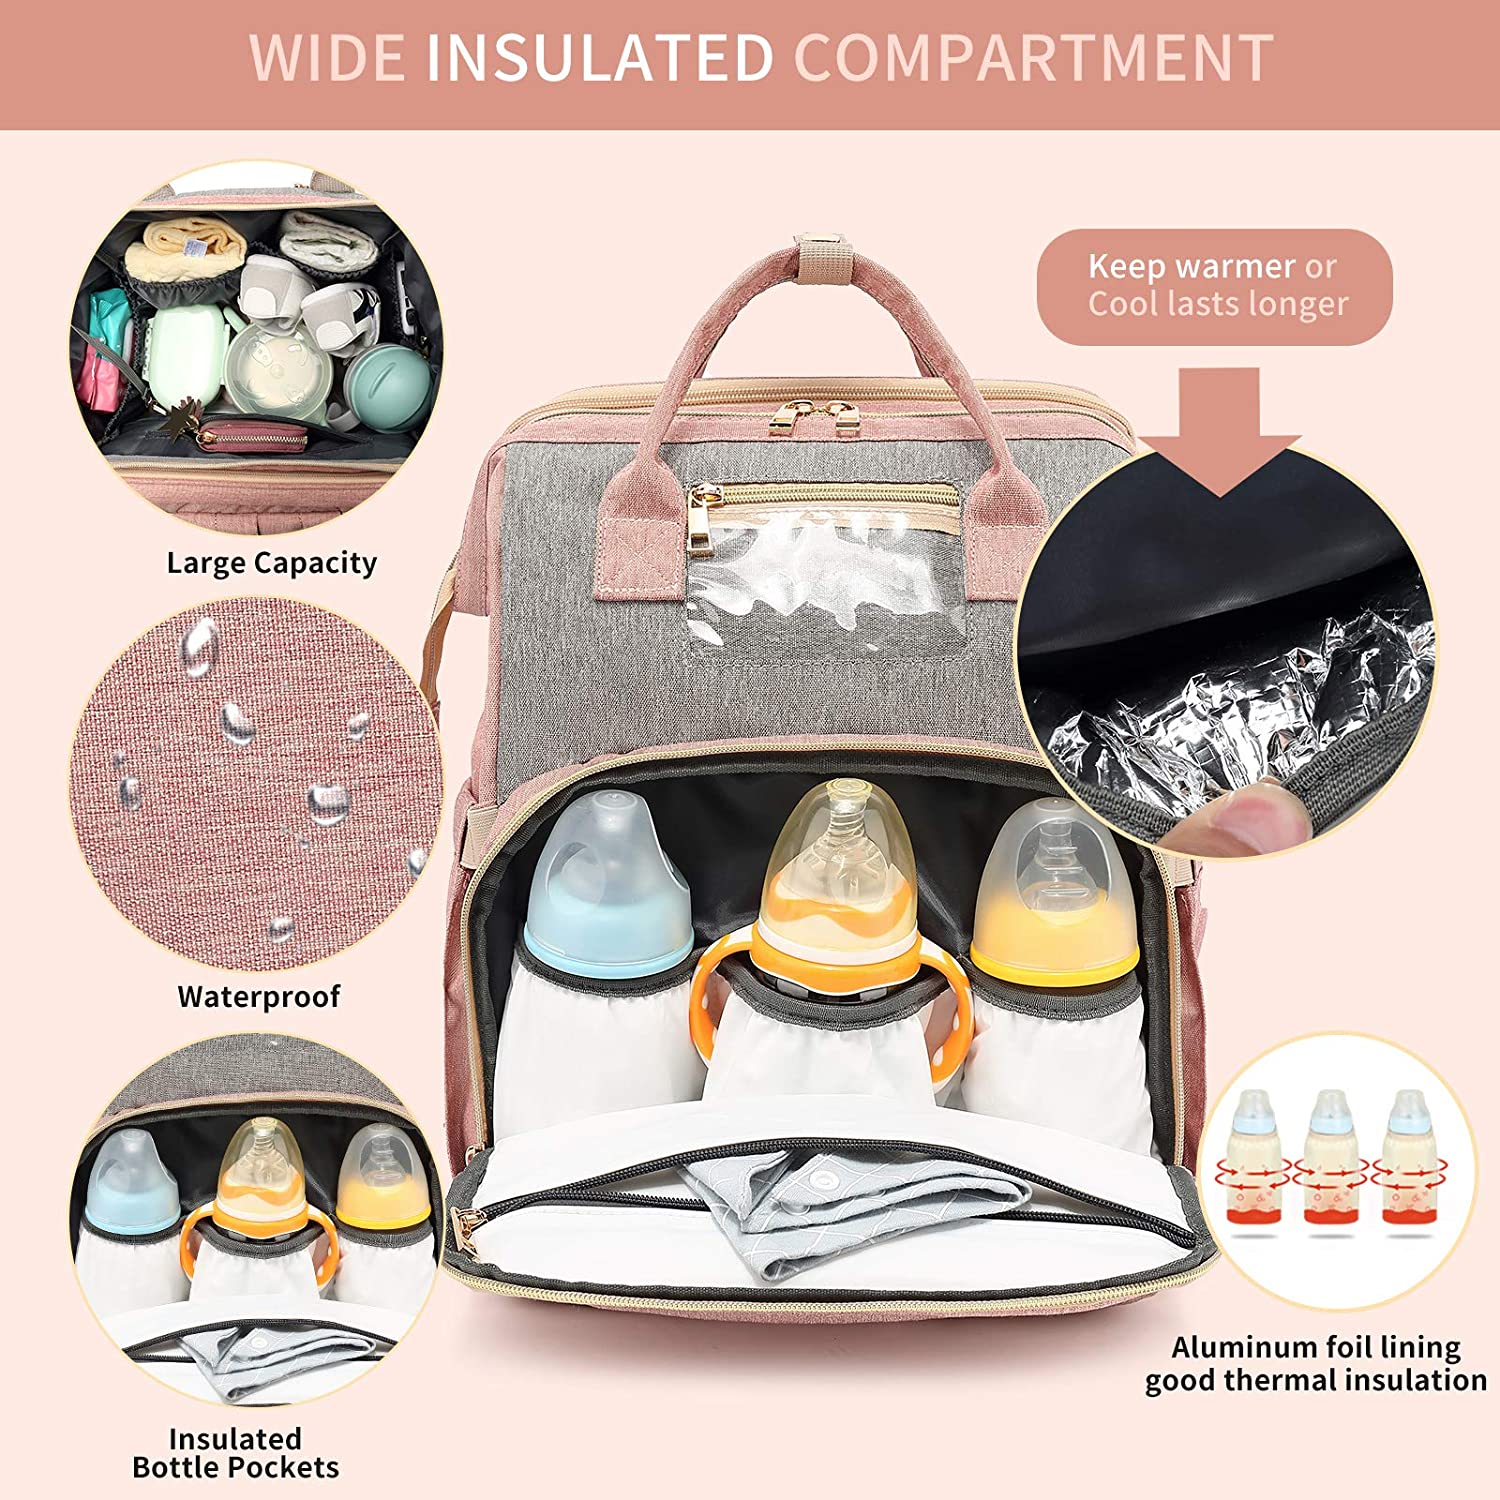 Diaper Bag Backpack with Changing Station, 6 in 1 Travel Bassinet Baby Bed with Sunshade, Baby Backpack Folding Crib, Multifunctional Mummy Bag, Large Capacity, USB, Headphone Port(2020 Pink-Gray)